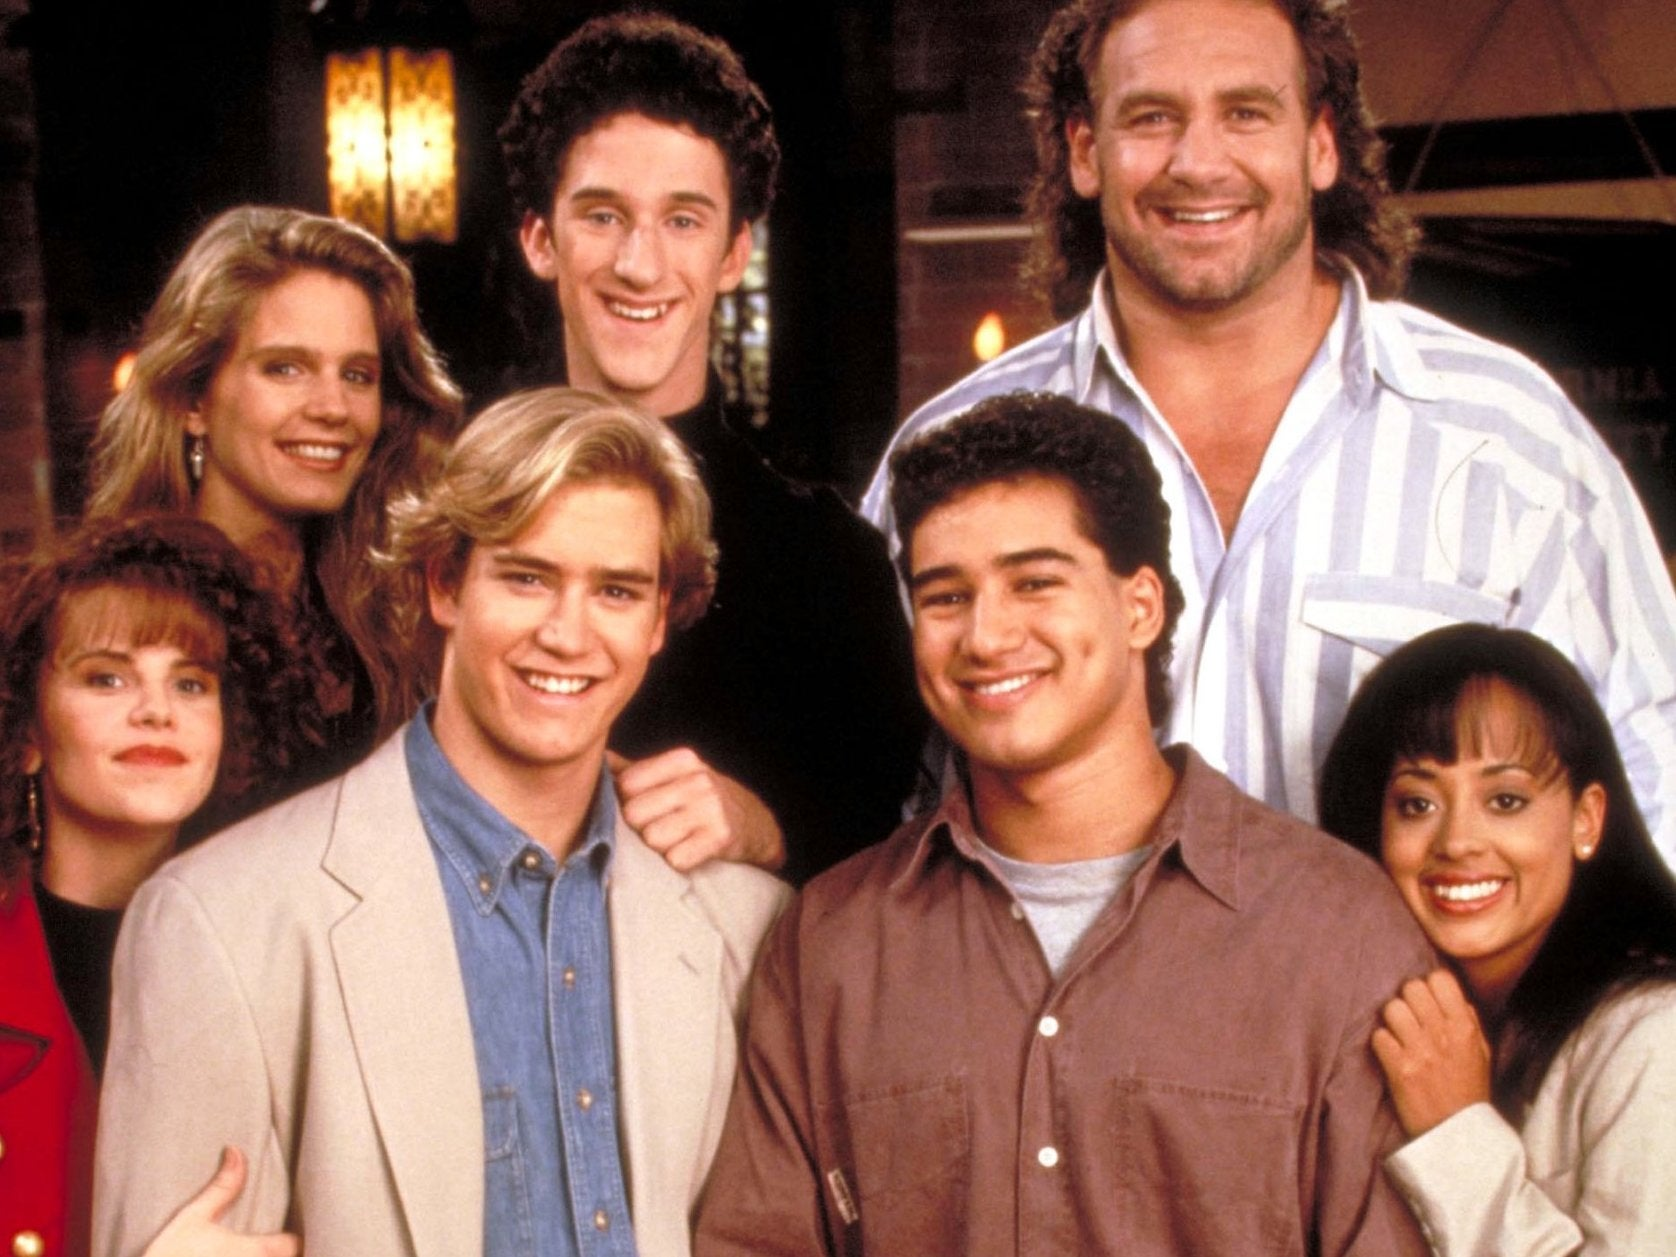 Saved by the Bell cast reunite for 30th anniversary